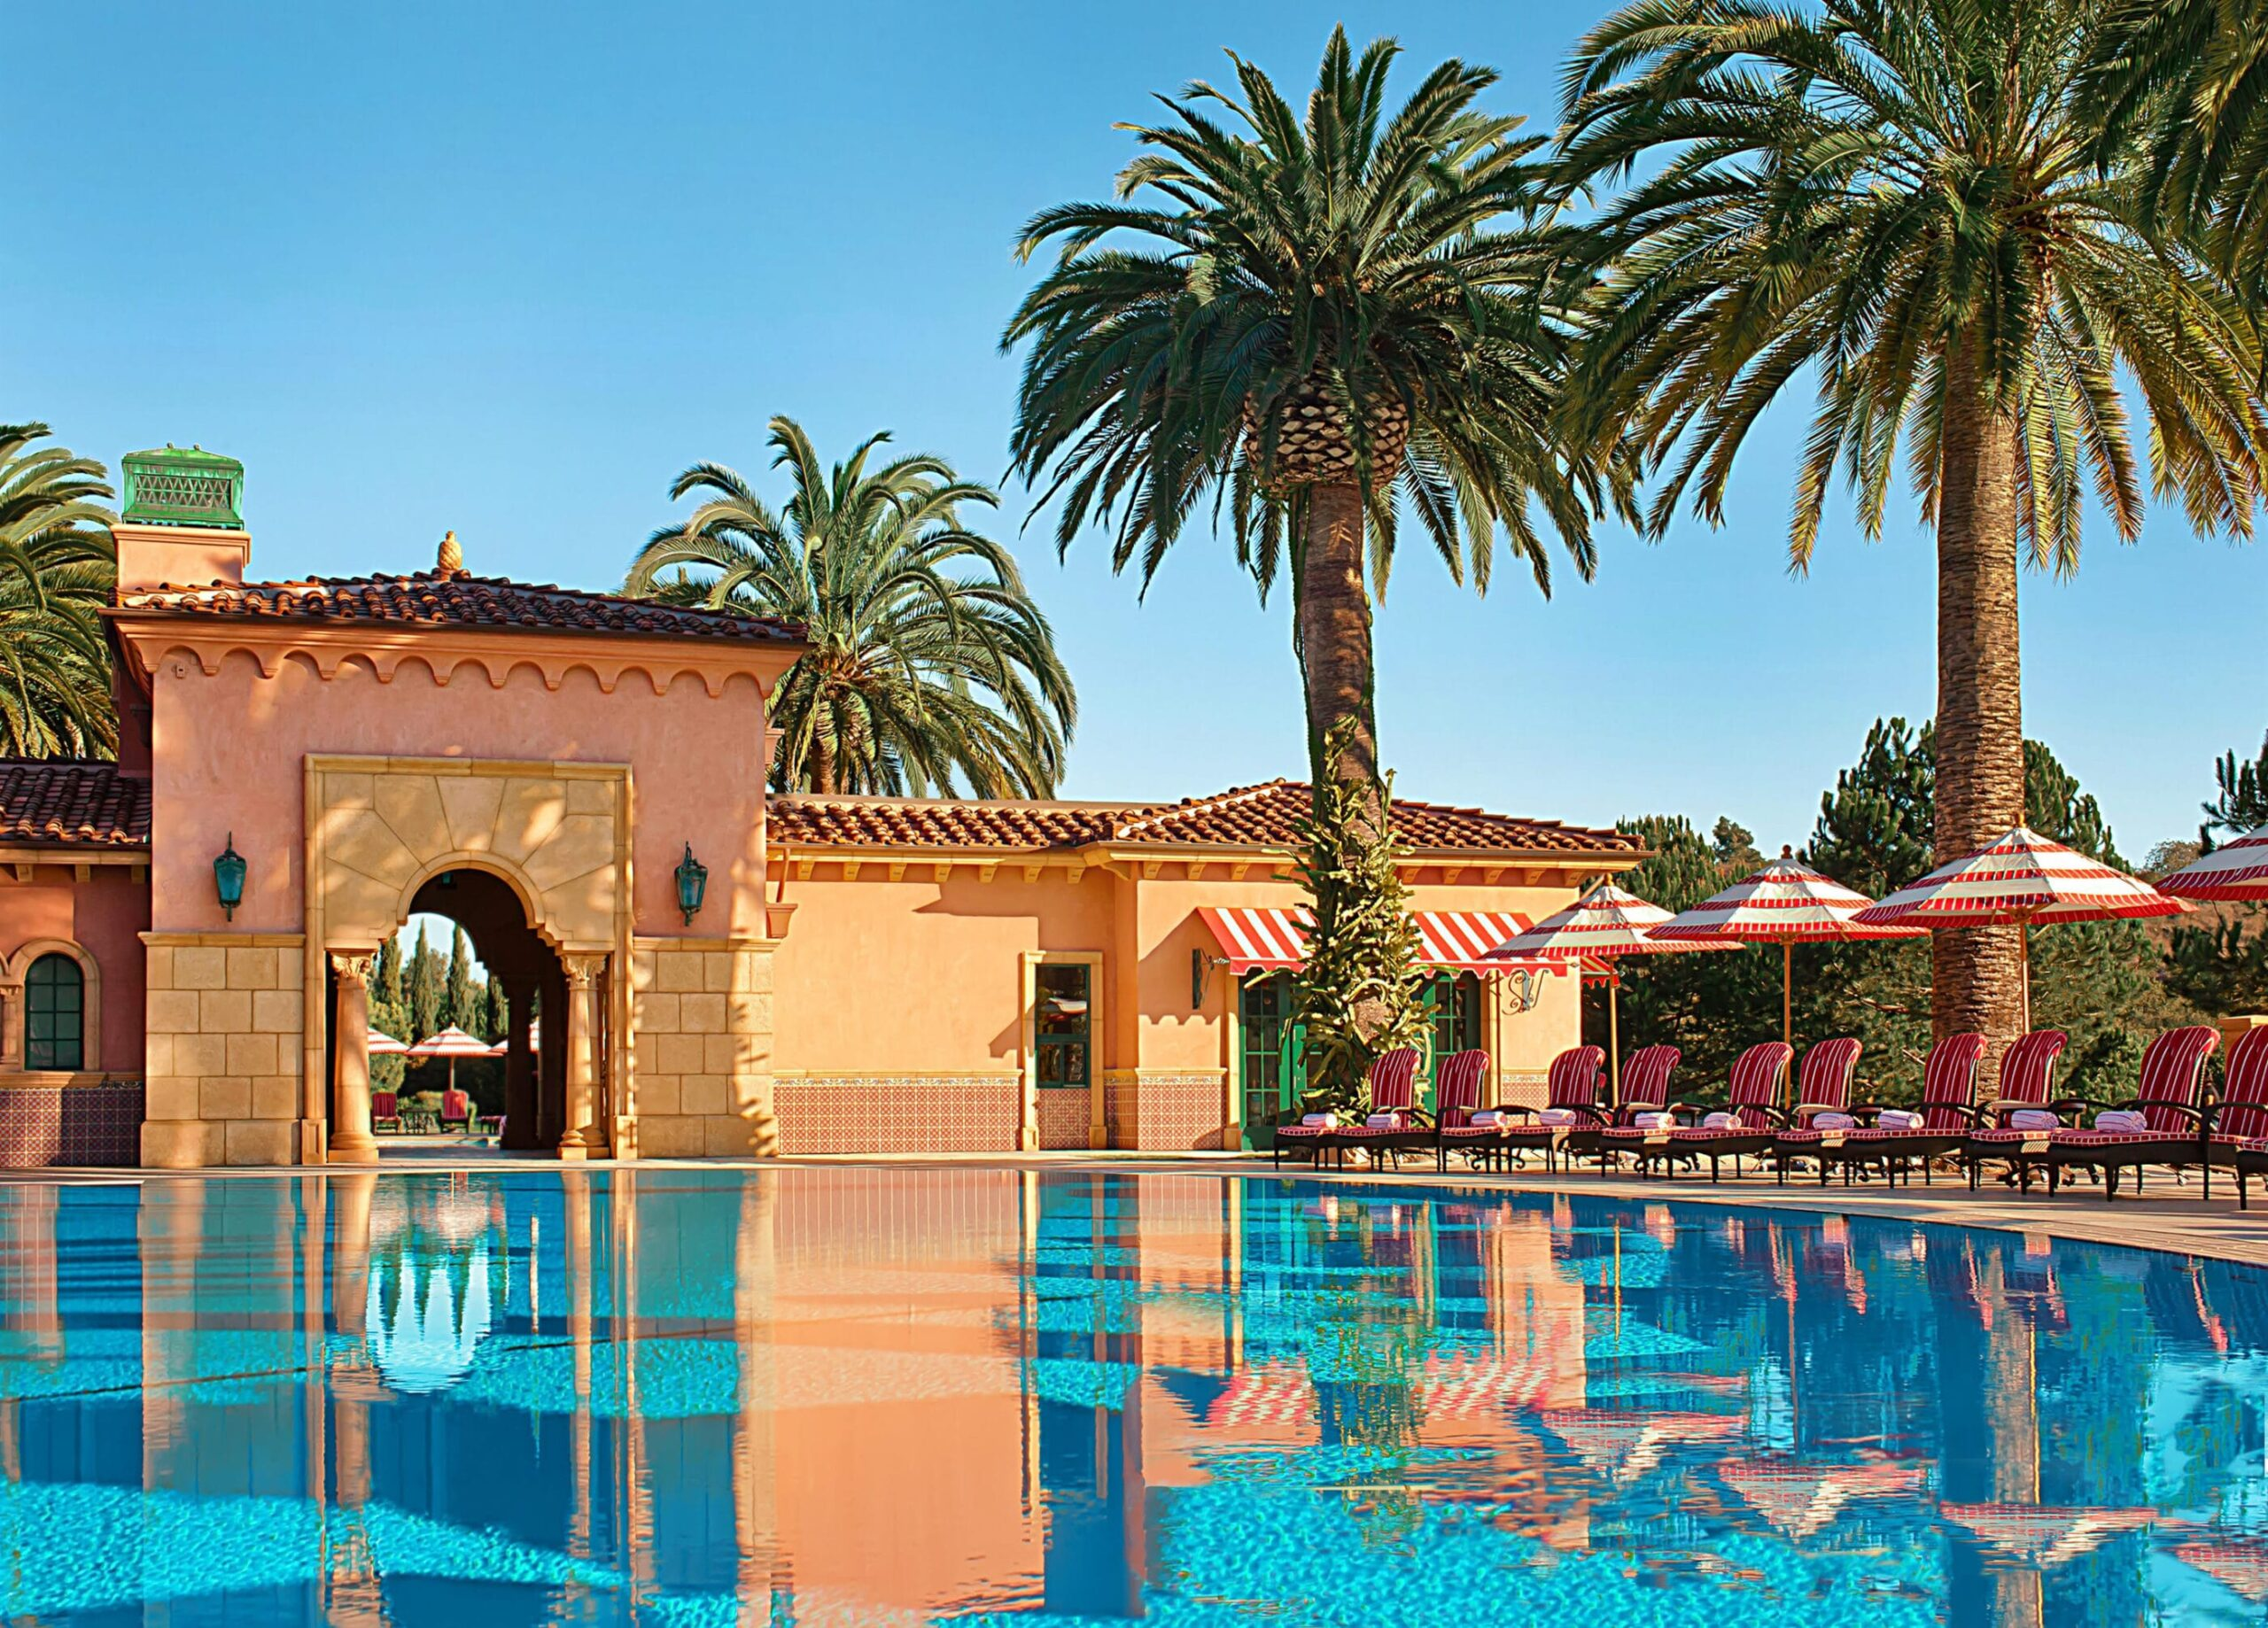 Find the best San Diego luxury hotels for your next five-star vacation